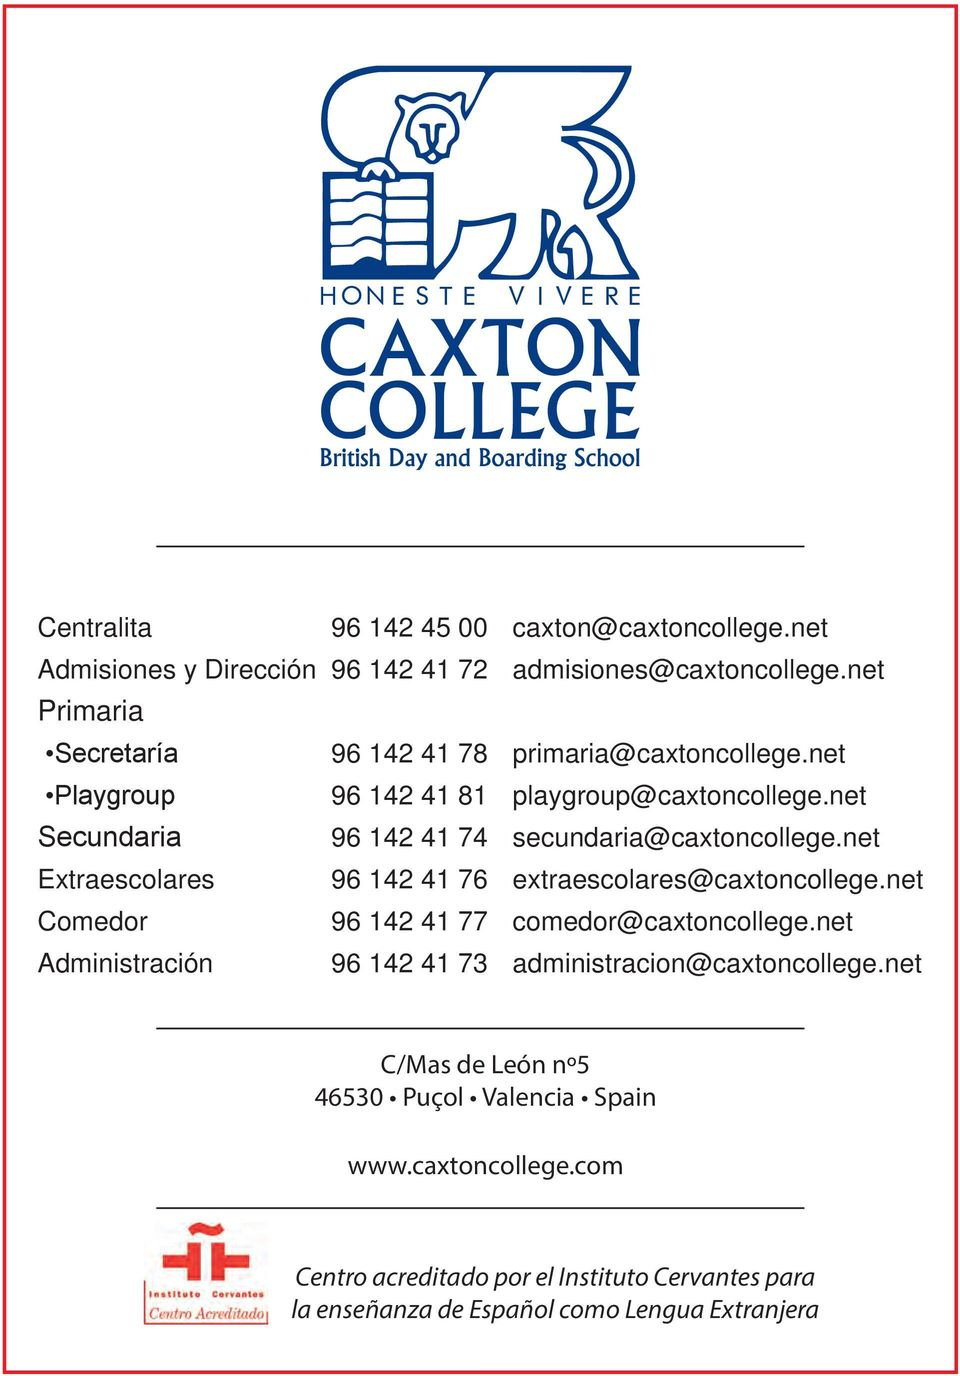 net playgroup@caxtoncollege.net secundaria@caxtoncollege.net extraescolares@caxtoncollege.net comedor@caxtoncollege.